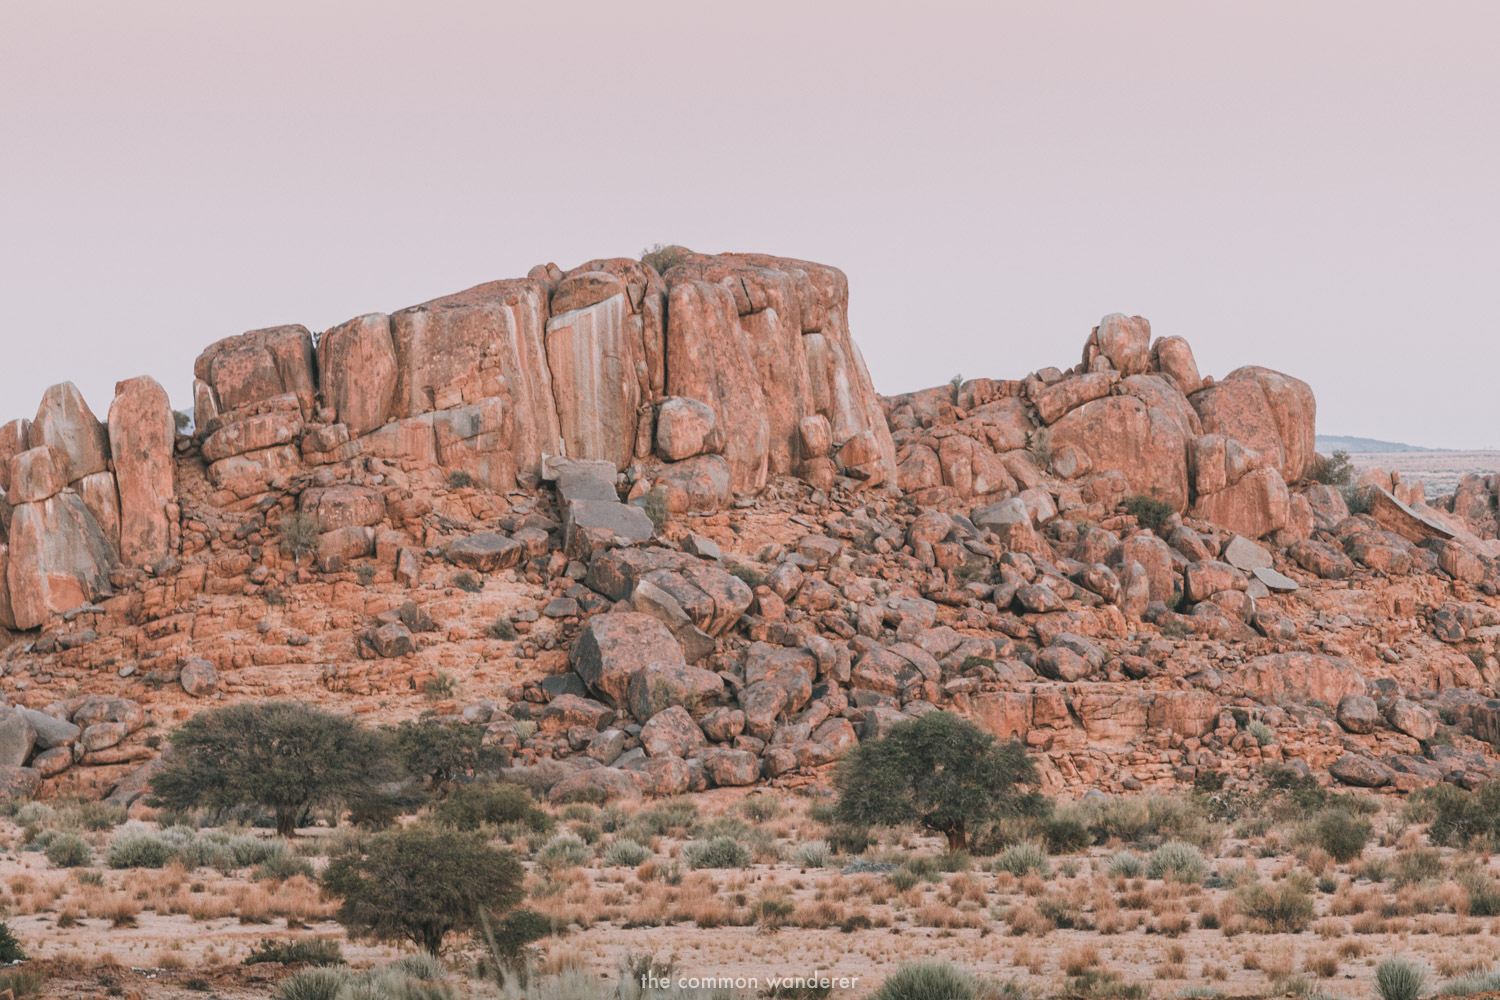 Rock formations at dusk in Namibia - best Namibia photos